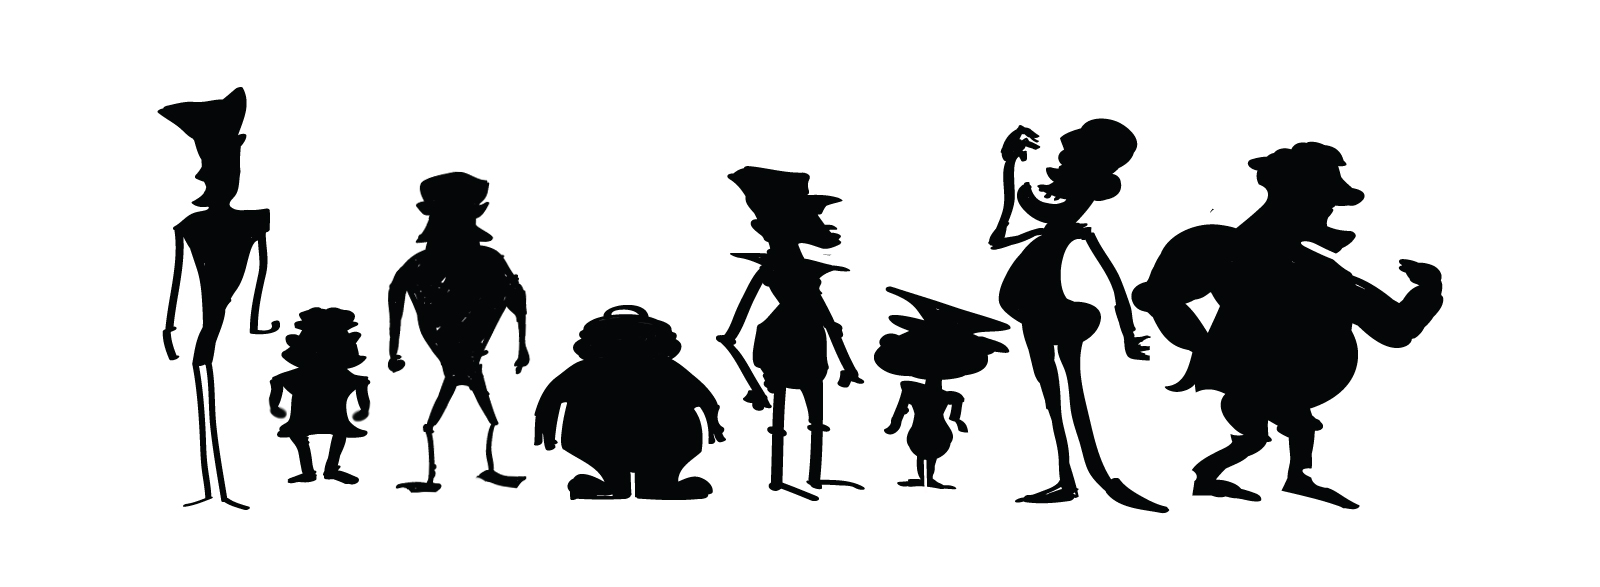 Play Well Art Blog: SIlhouette Practice